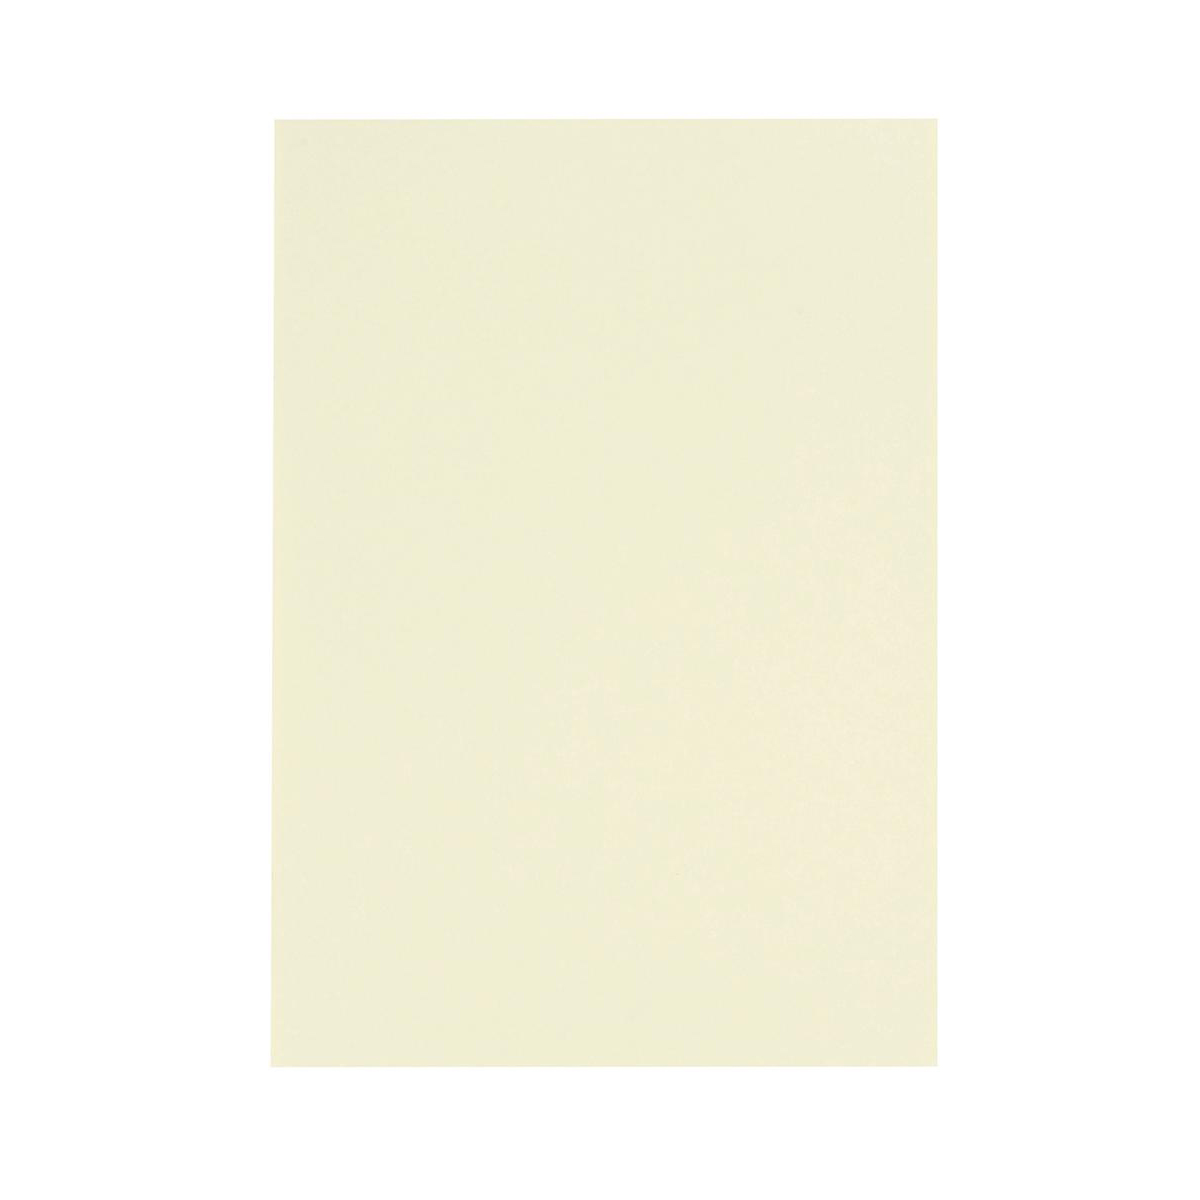 5 Star Office Coloured Card Multifunctional 160gsm A4 Light Cream 250 Sheets